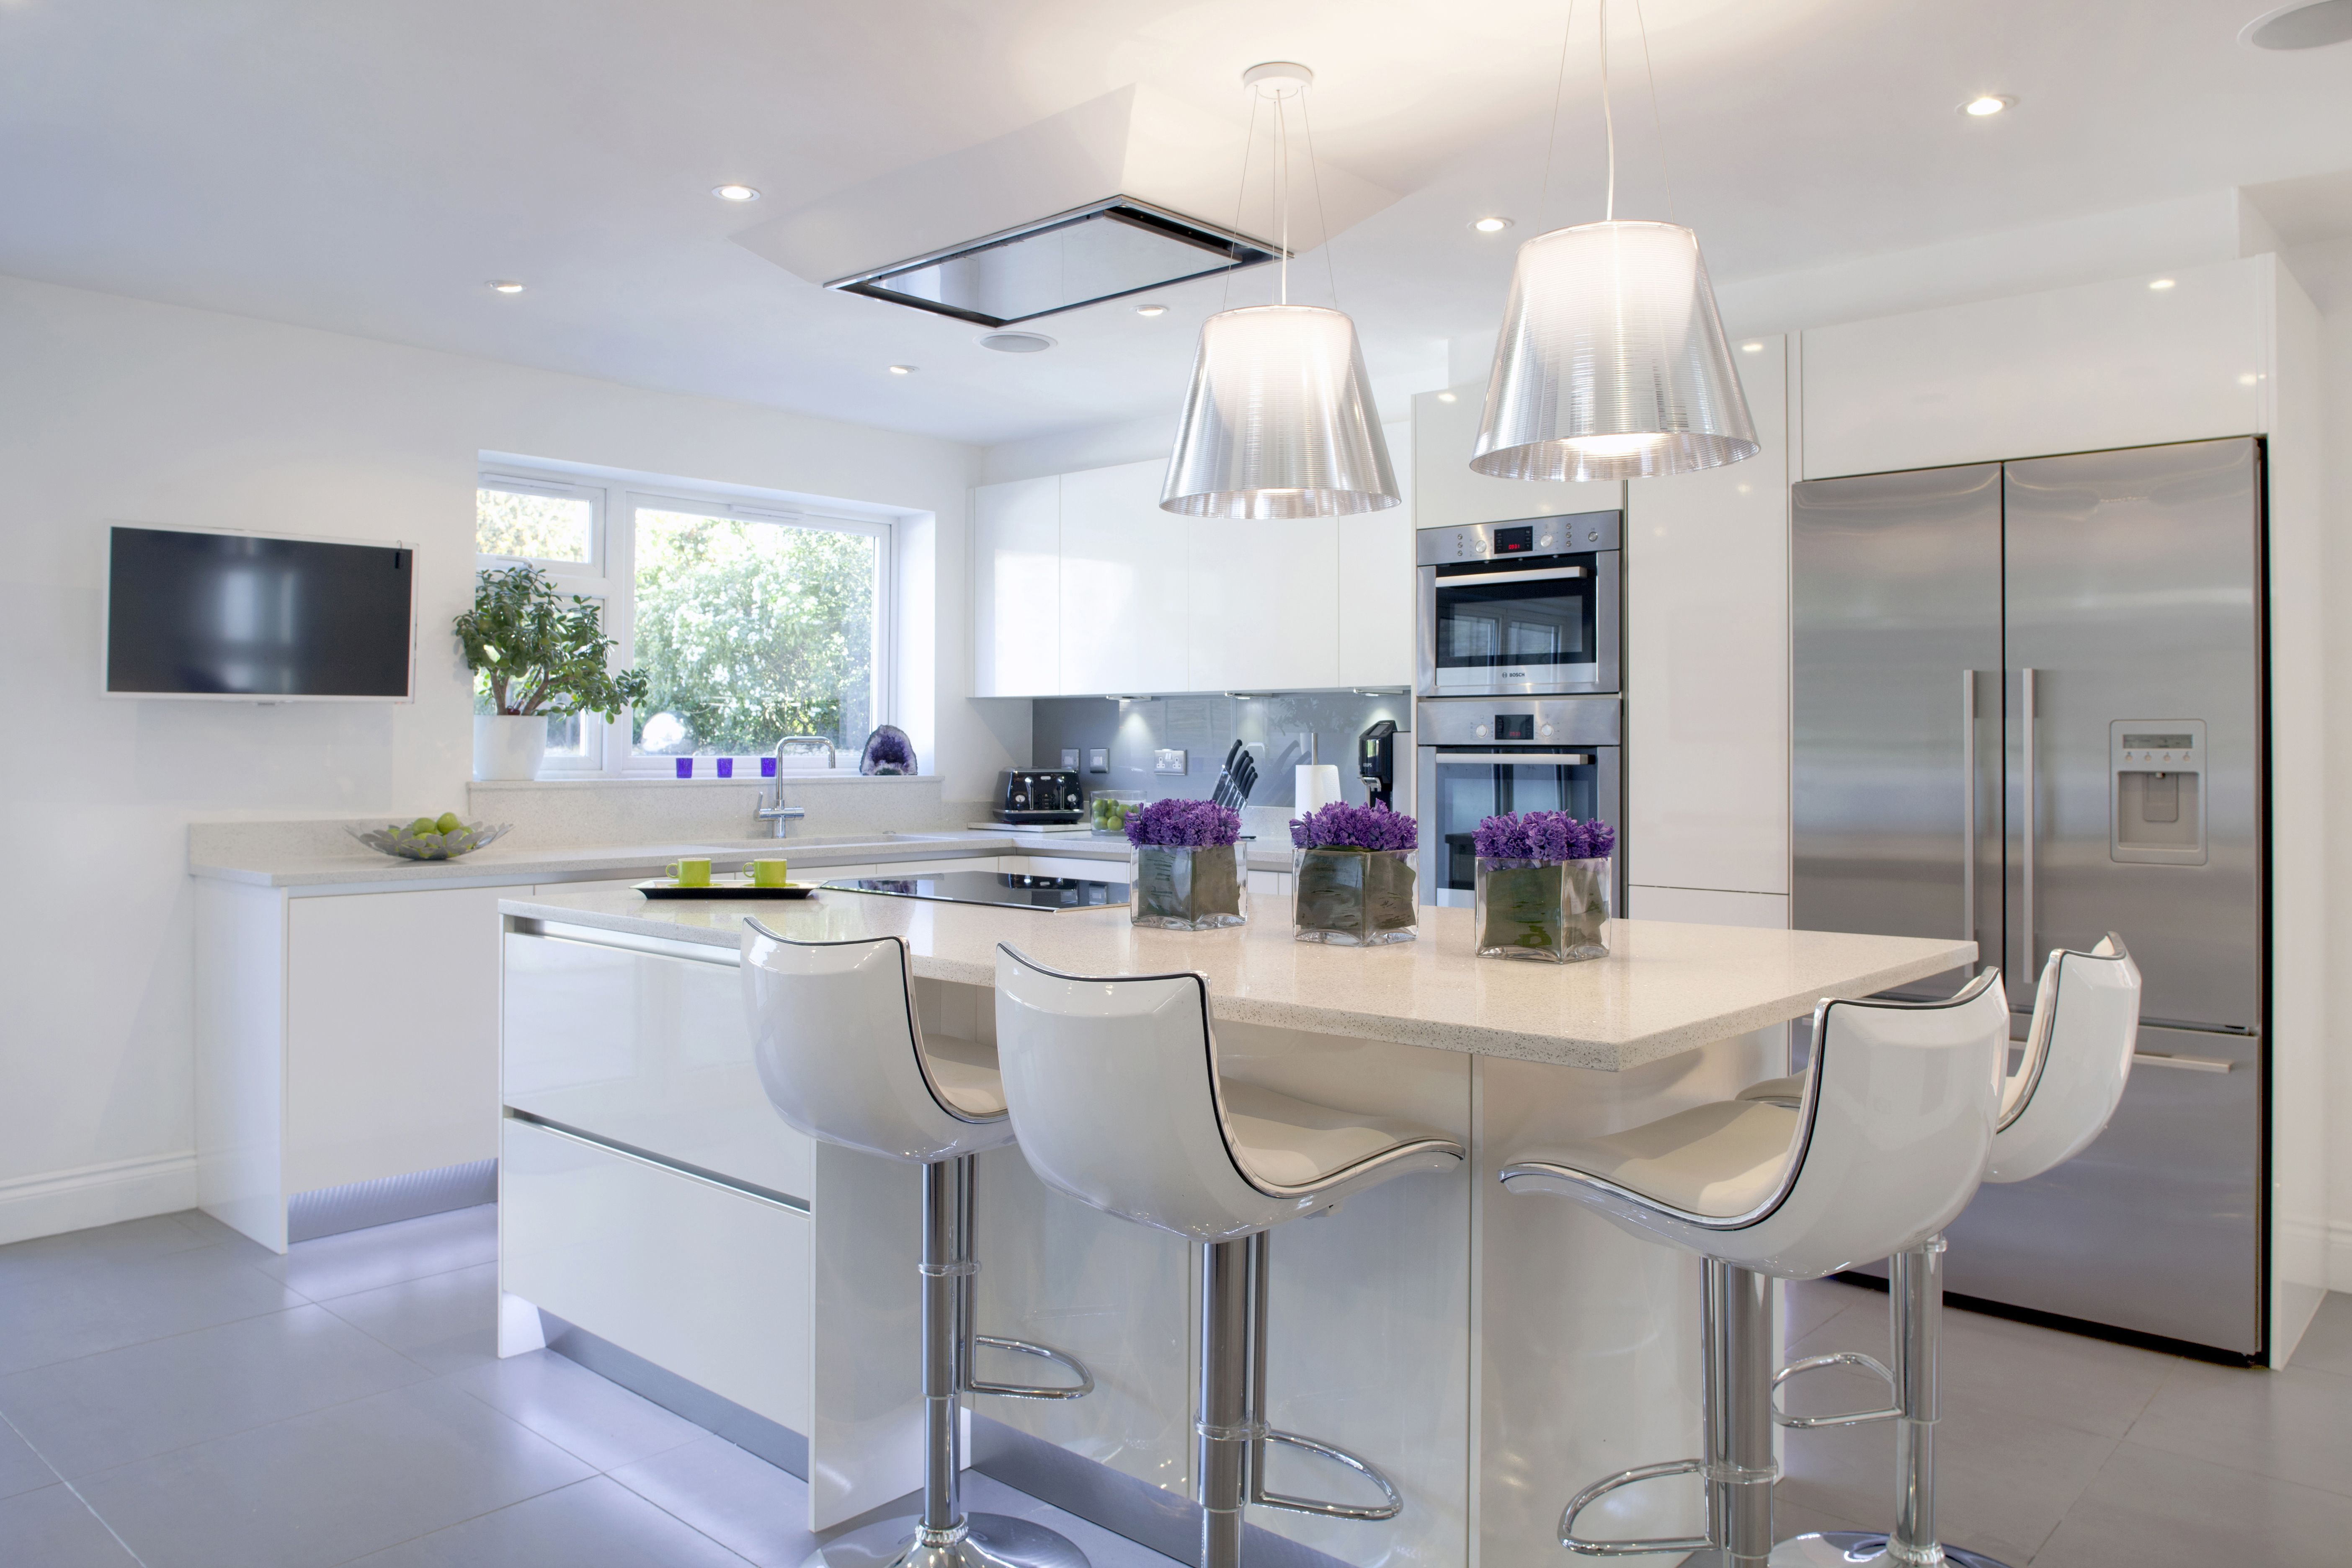 Clean Design, White with dining island. #Kitchen #DiningRoom #CleanDesign #White #PurpleFlowers #KitchenIsland #Braverman #kitchenextensions